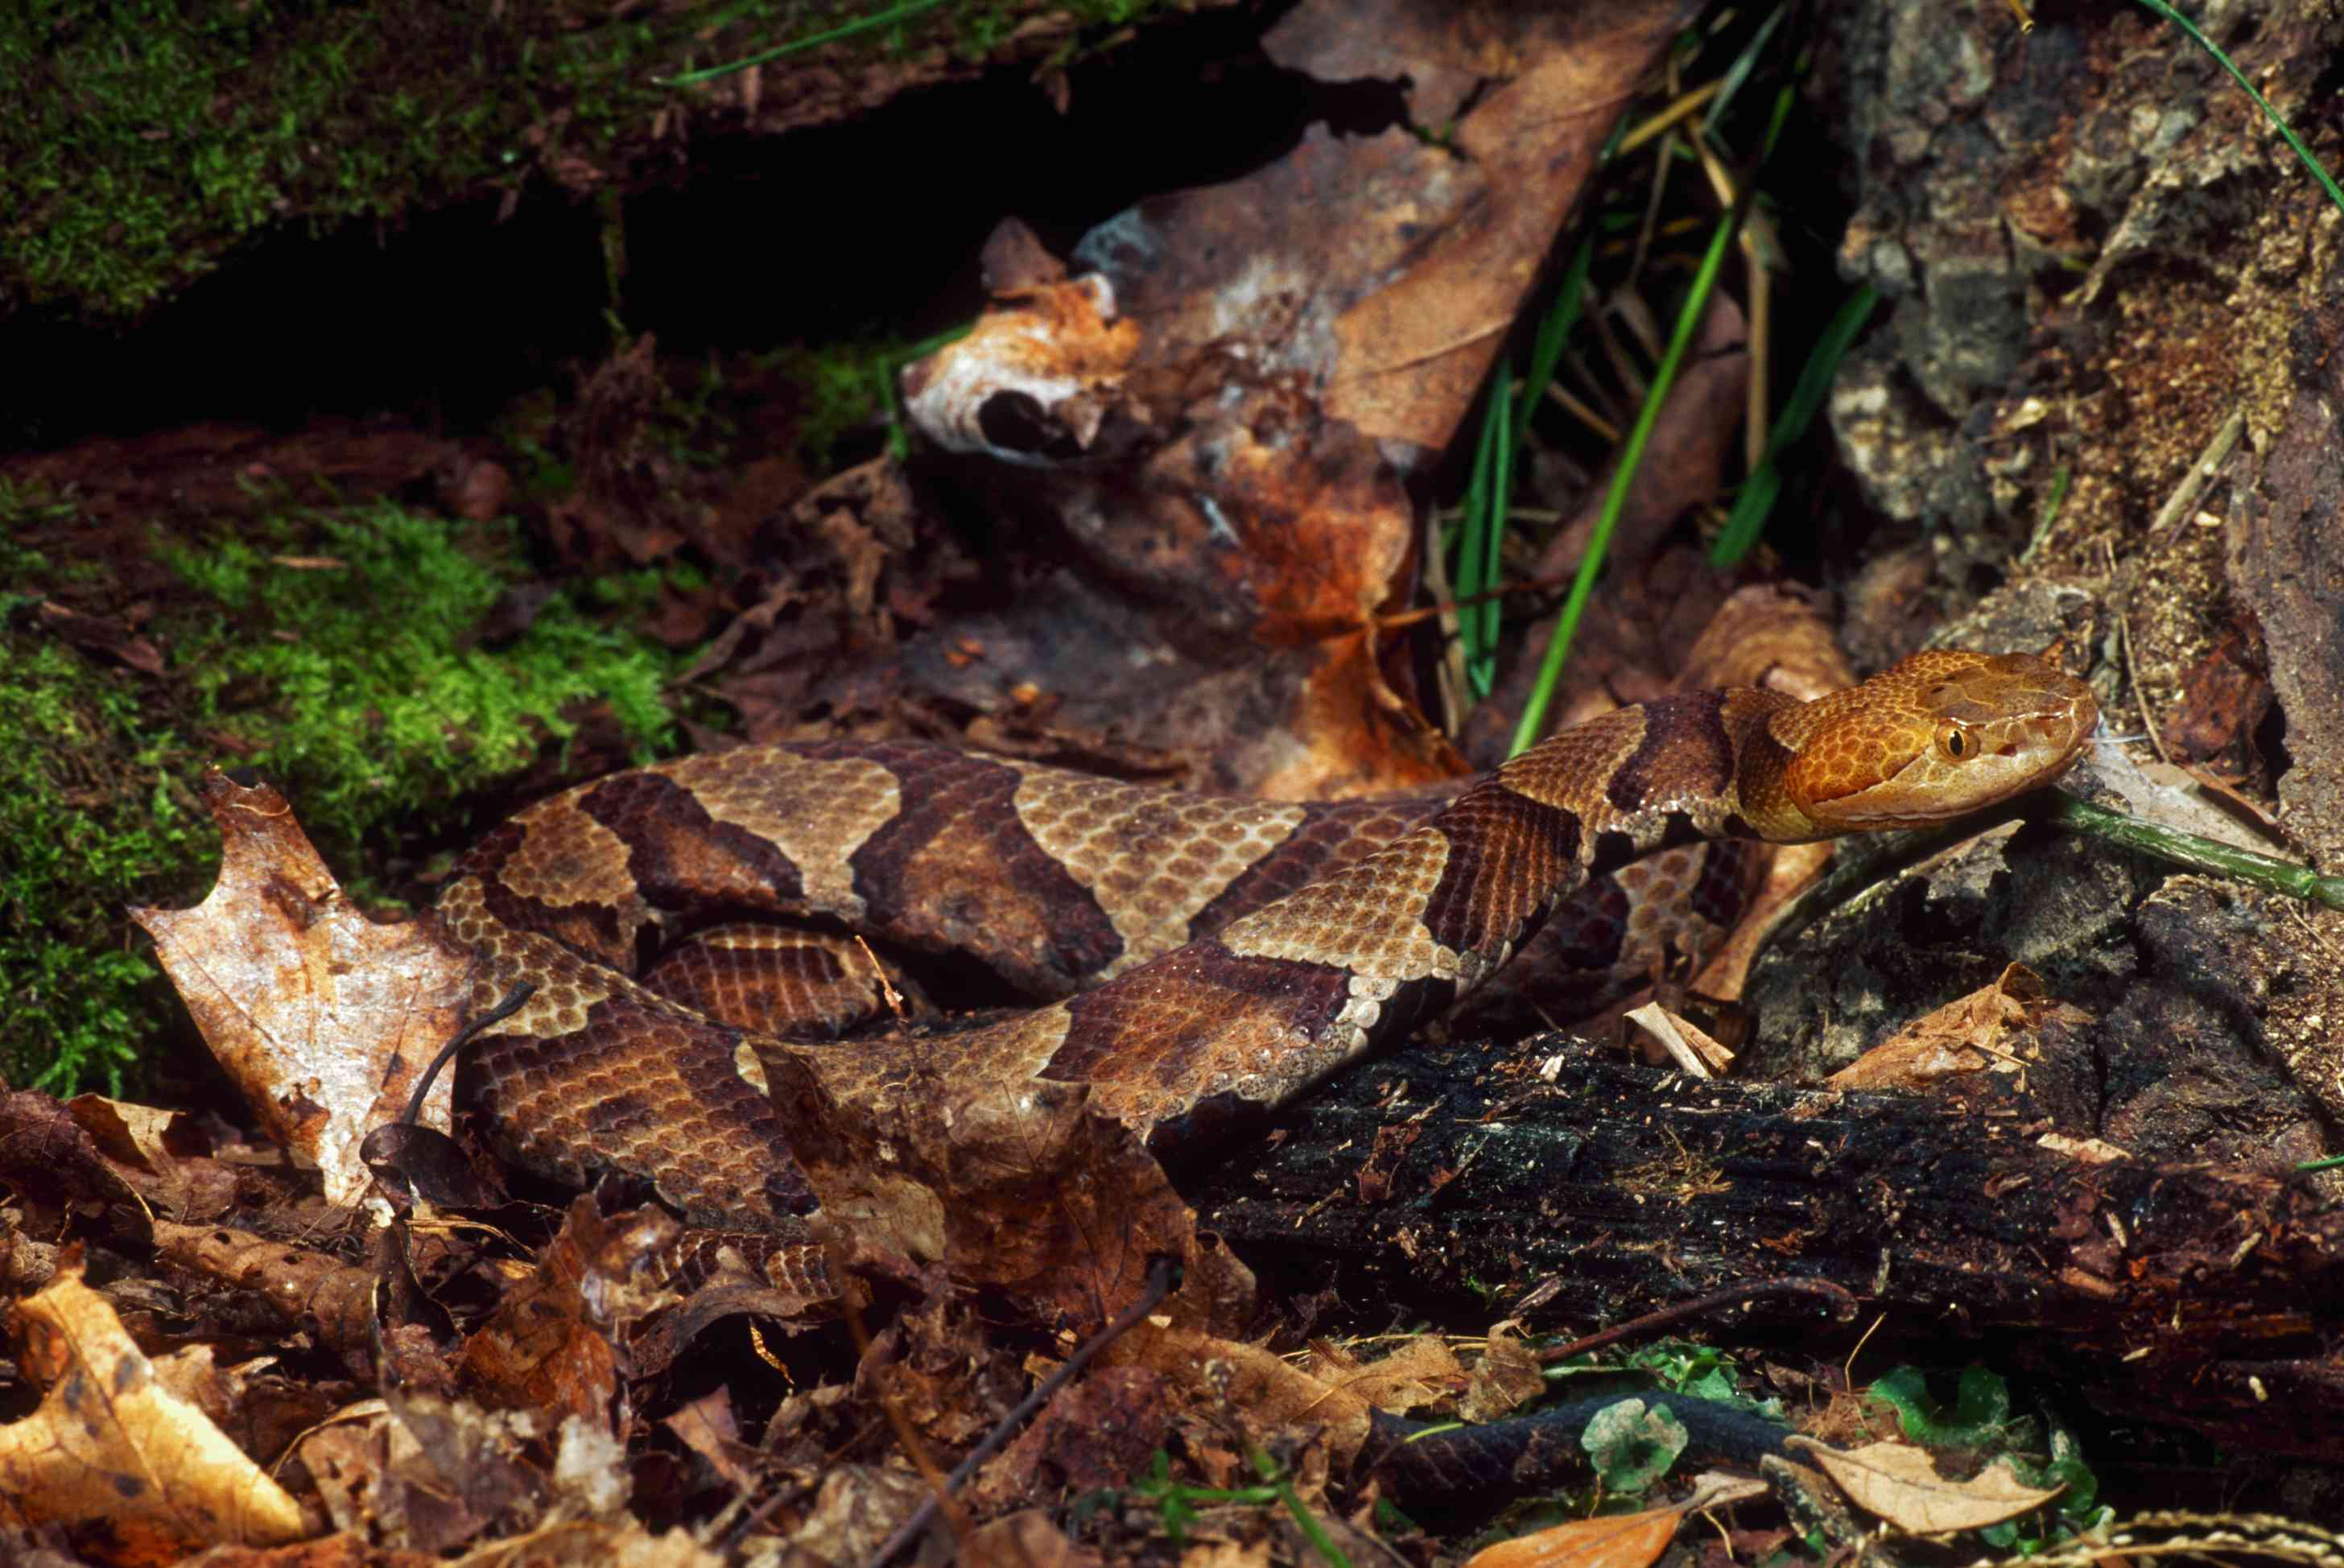 Northern copperhead on the ground in a forest